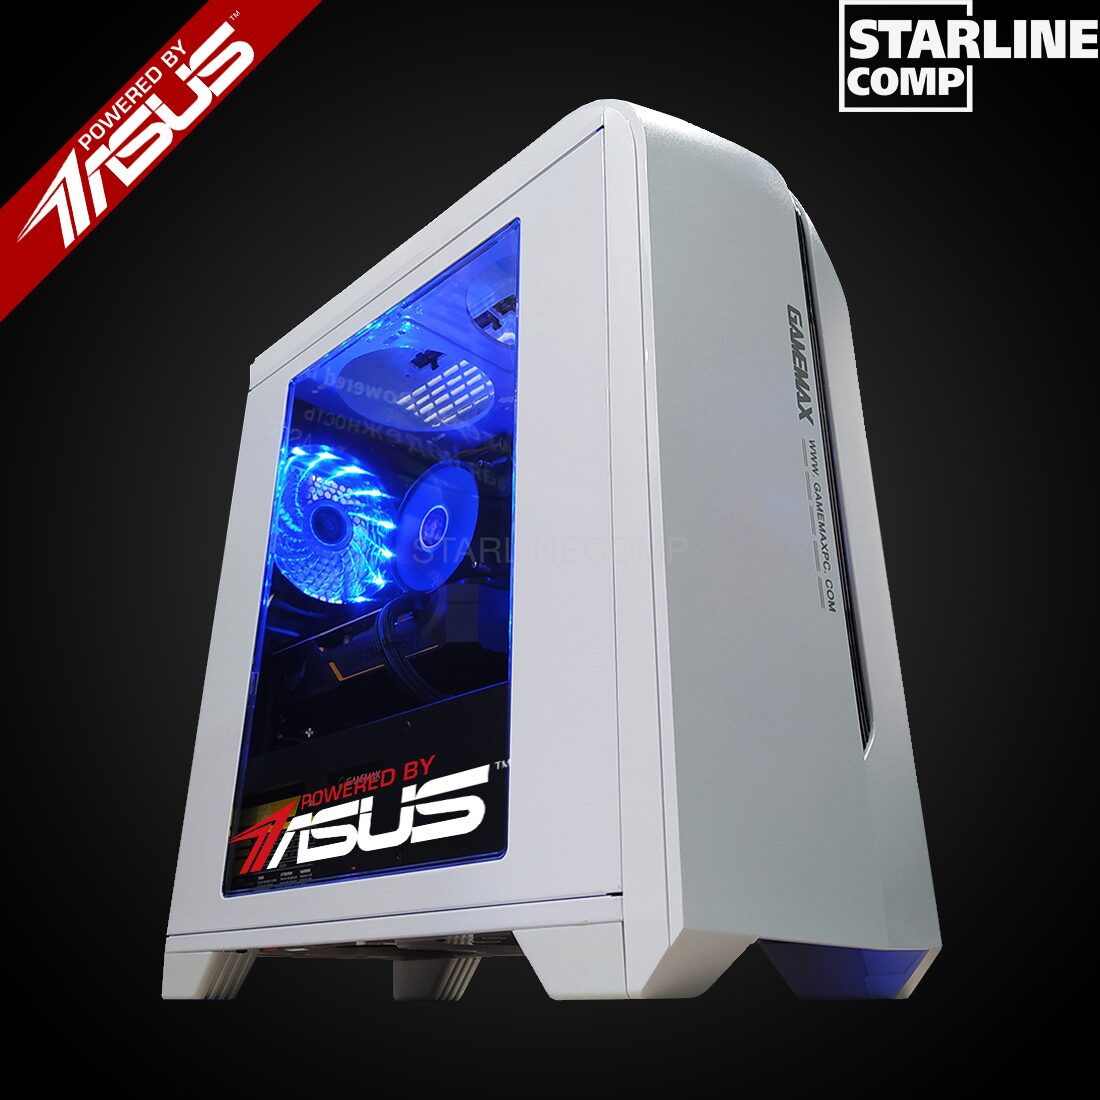 НОВАЯ СБОРКА POWERED BY ASUS!!! INTEL CORE I3-10100F, 16Gb RAM, GTX 1650 Super 4Gb,SSD 240gb,HDD 2000gb